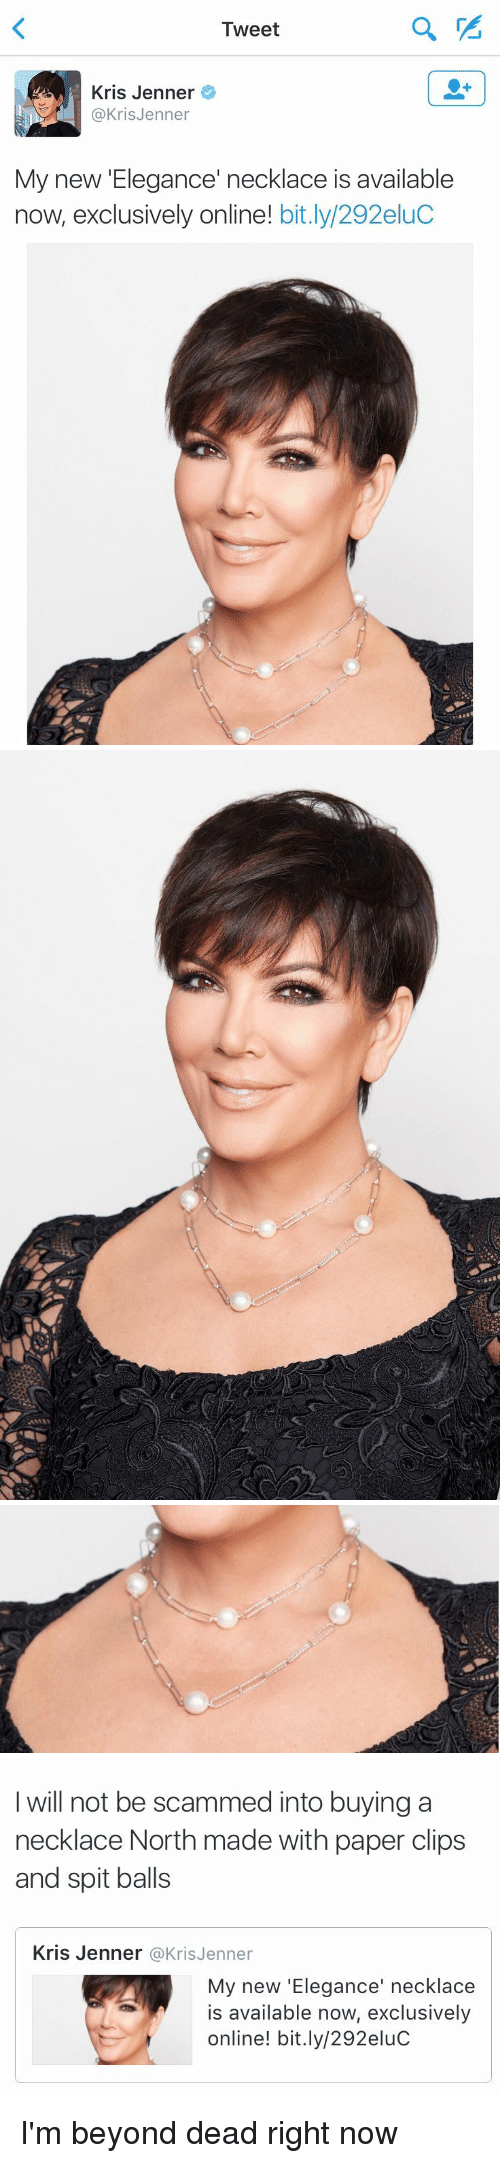 Funny, Kris Jenner, and Ims: Tweet  Kris Jenner  Kris Jenner  My new 'Elegance' necklace is available  now, exclusively online  bit.ly/292eluC   I will not be scammed into buying a  necklace North made with paper clips  and spit balls  Kris Jenner Kris Jenner  My new 'Elegance' necklace  is available now, exclusively  online! bit.ly/292eluc I'm beyond dead right now